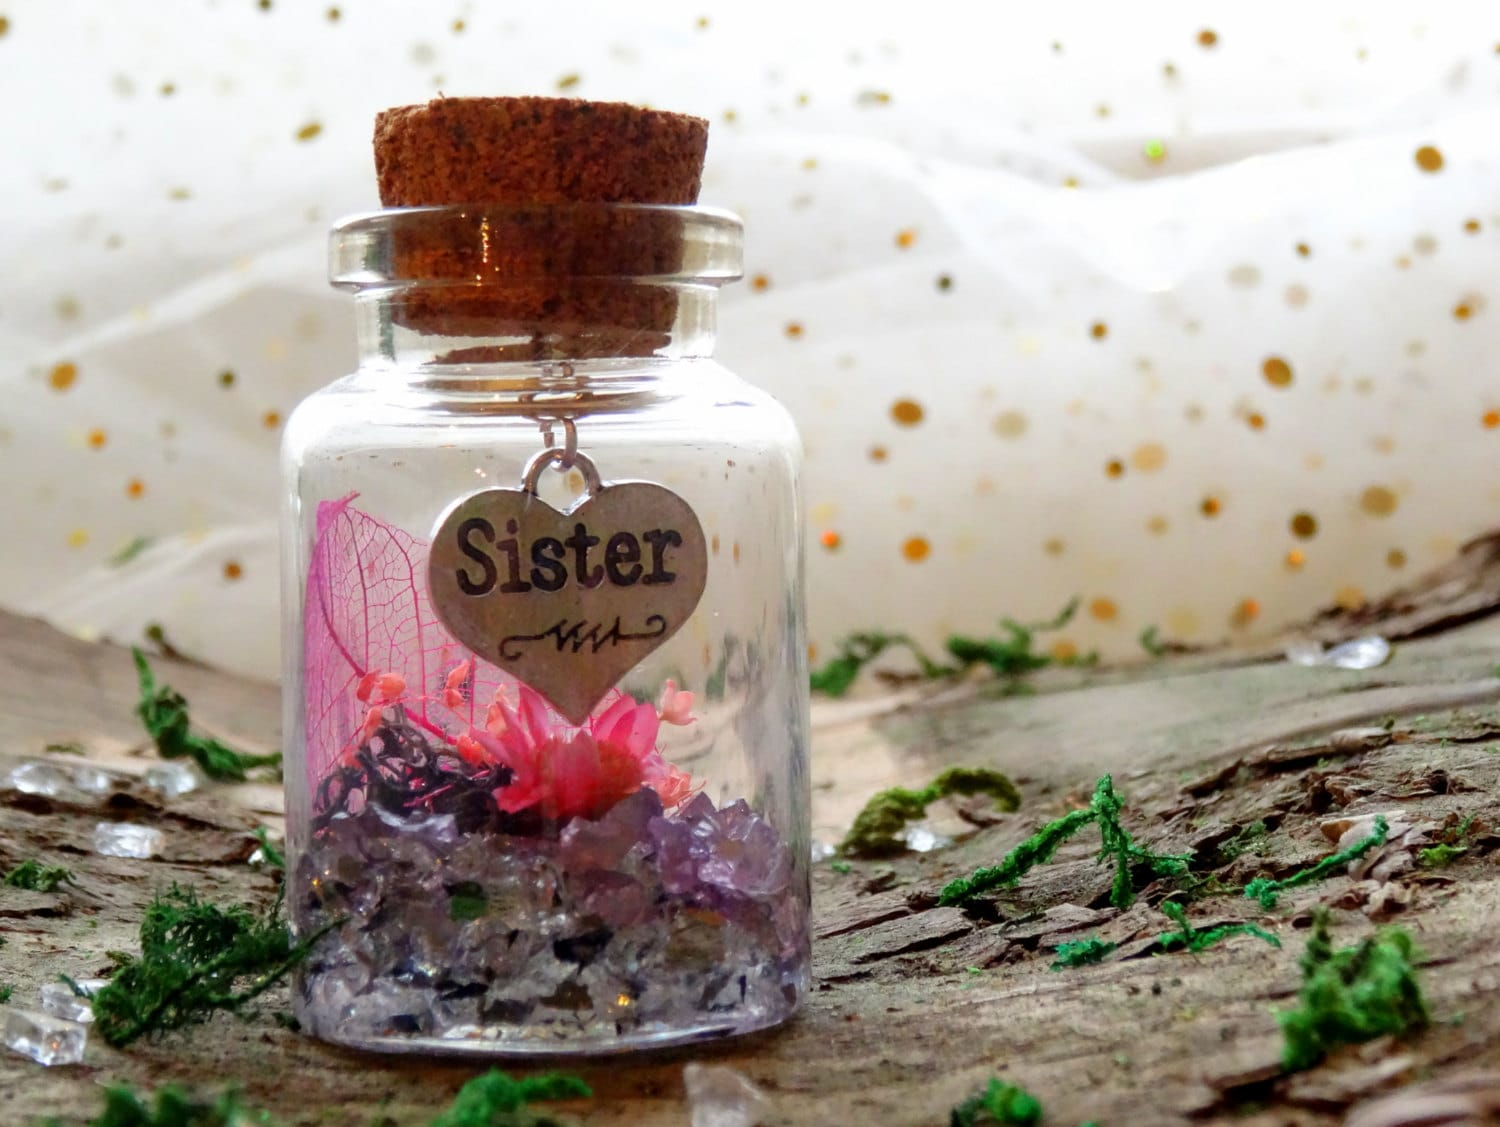 Fairy Garden In A Jar With Sister Charm, Sister Gift, Real Flower Garden,  Cute Gift